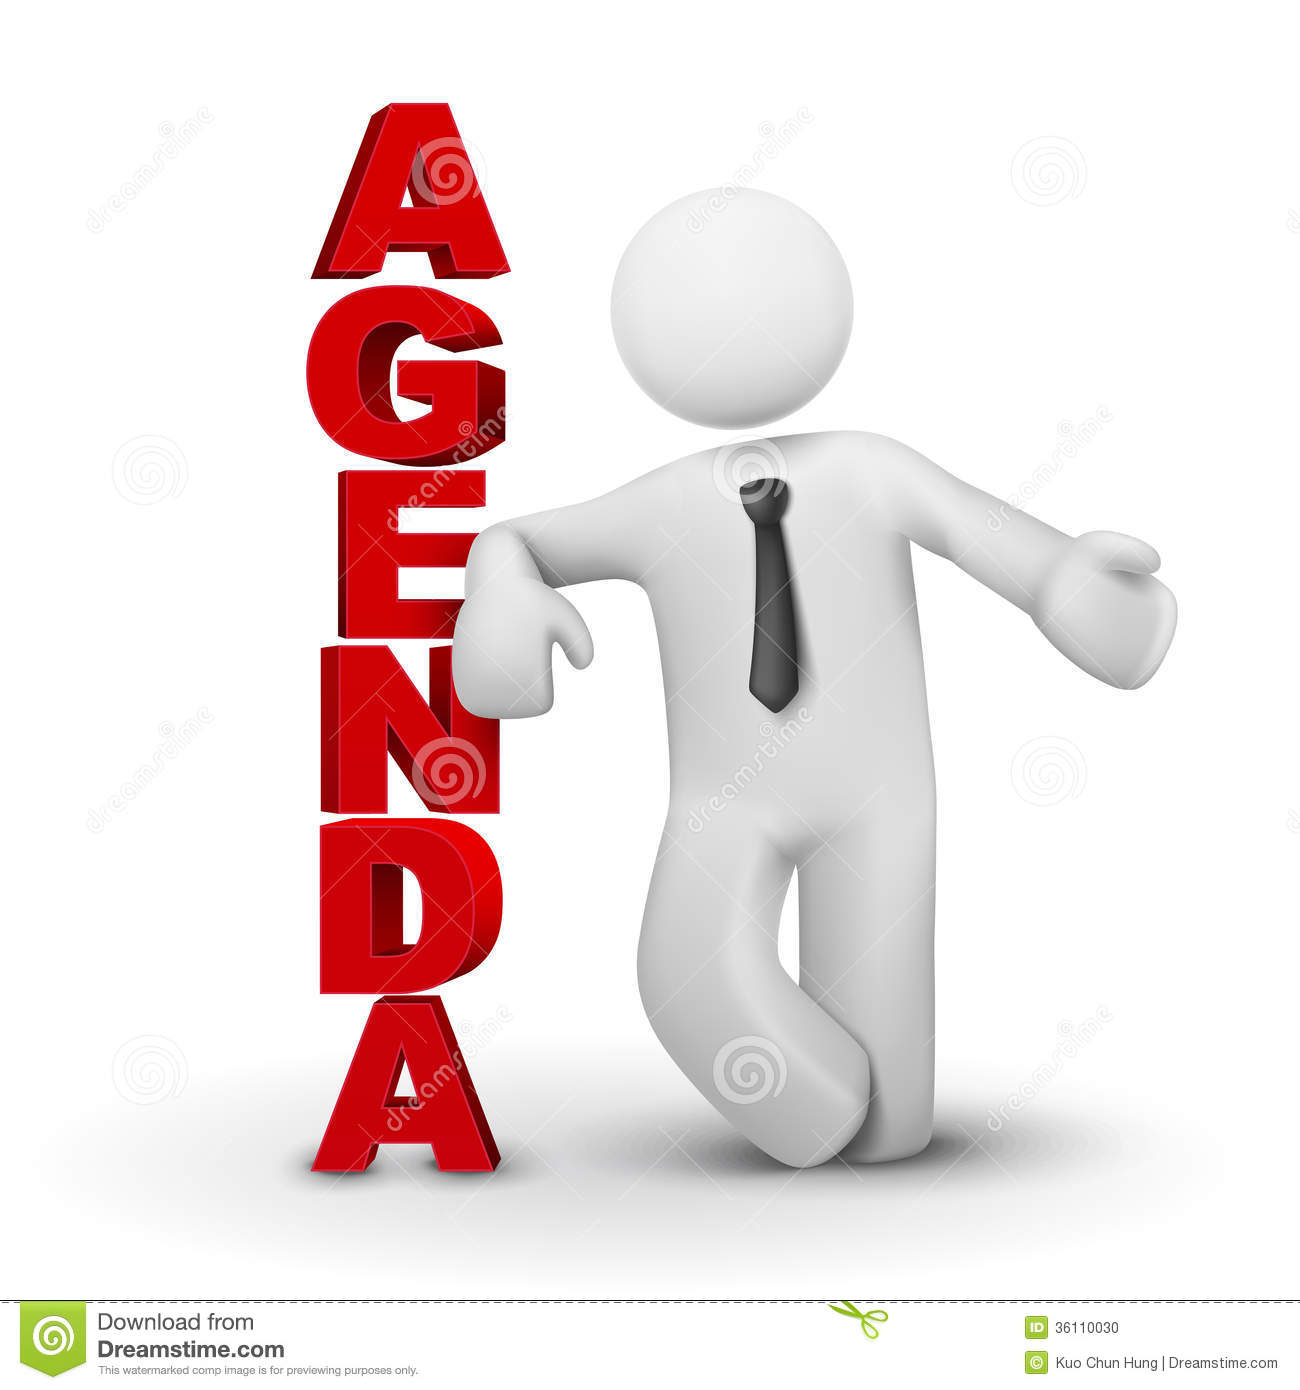 d-business-man-presenting-concept-agenda-white-background-36110030